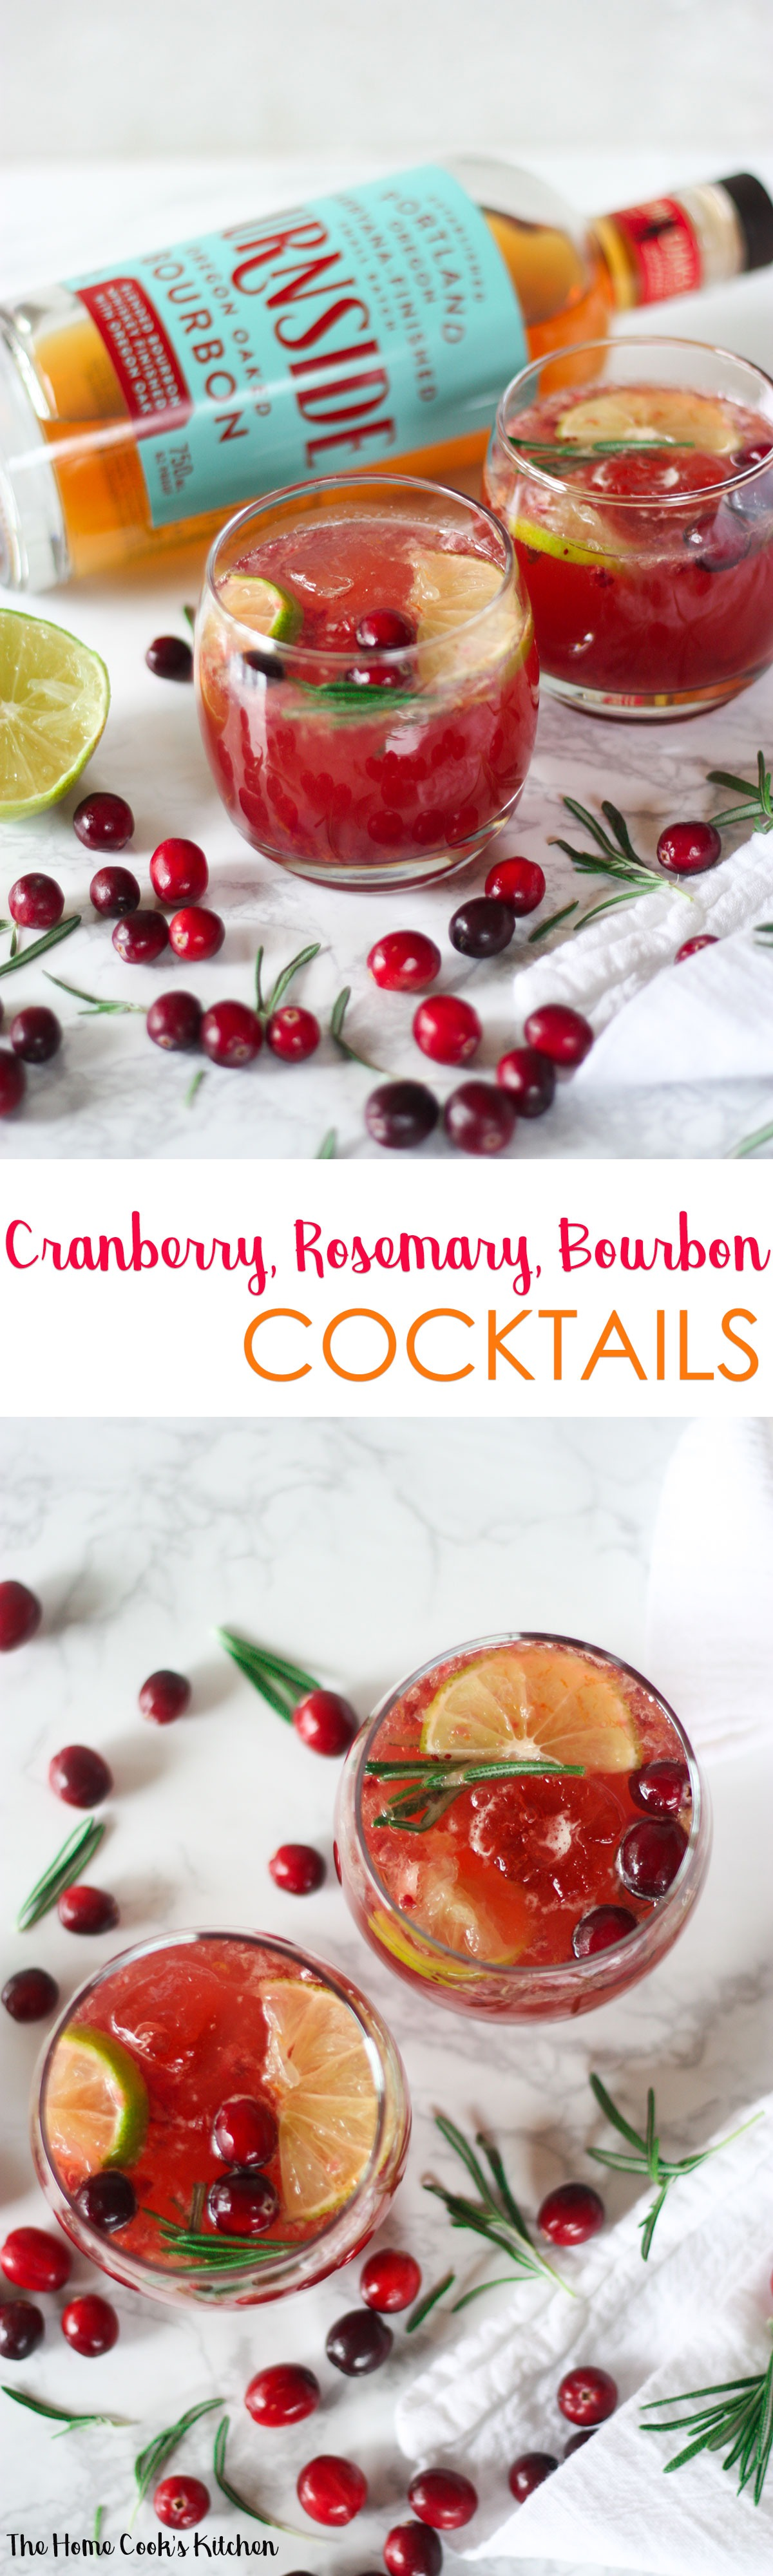 Cranberry Rosemary Bourbon Cocktails pin for later!